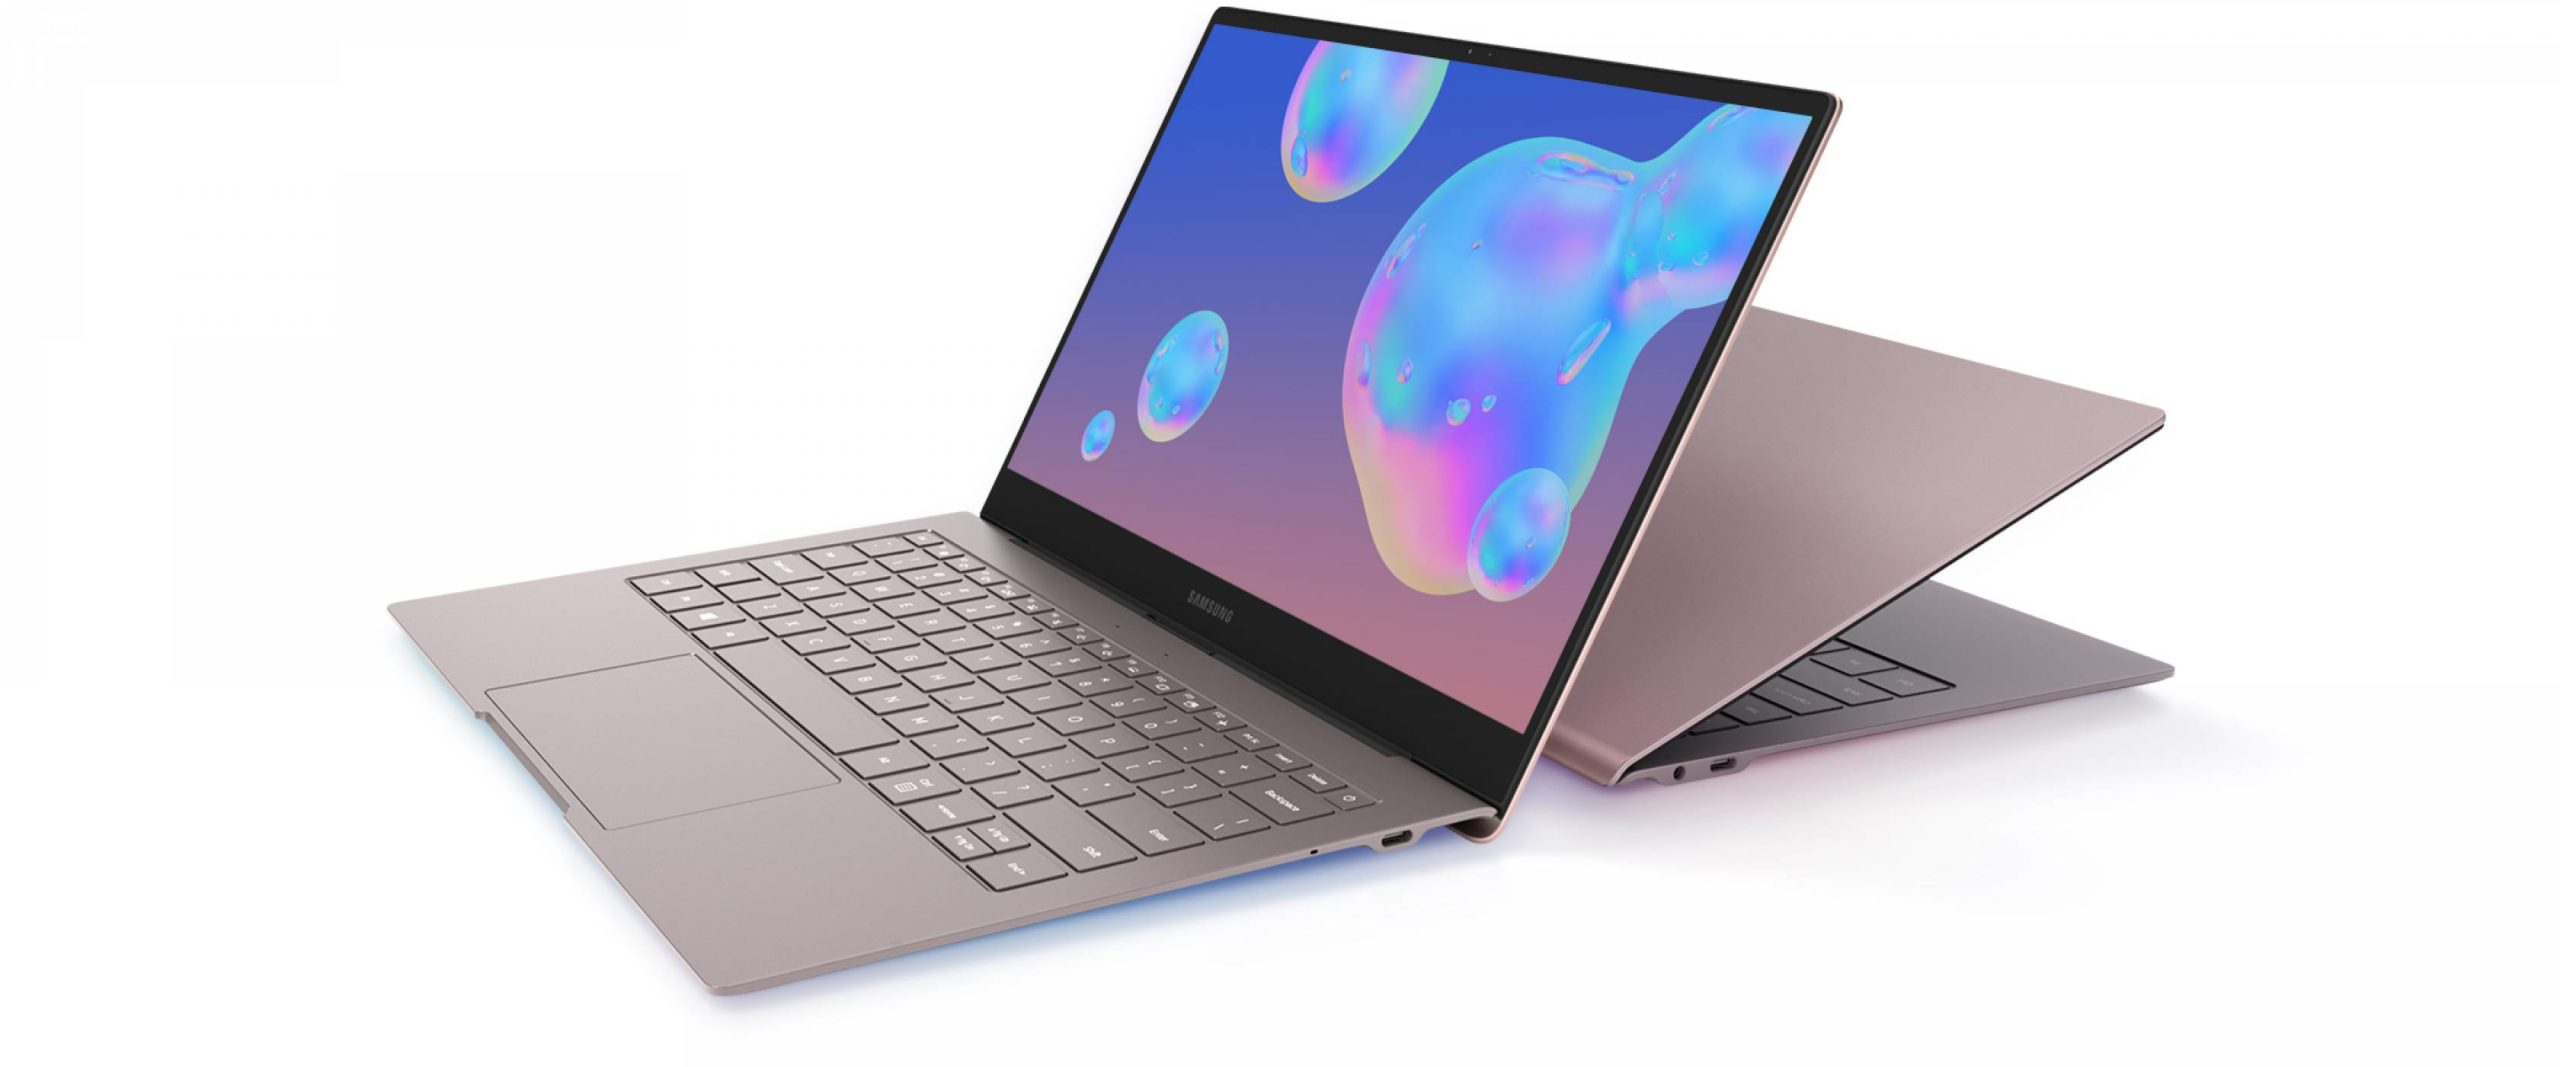 Samsung Galaxy Book S Laptop is finally launching in the United Kingdom